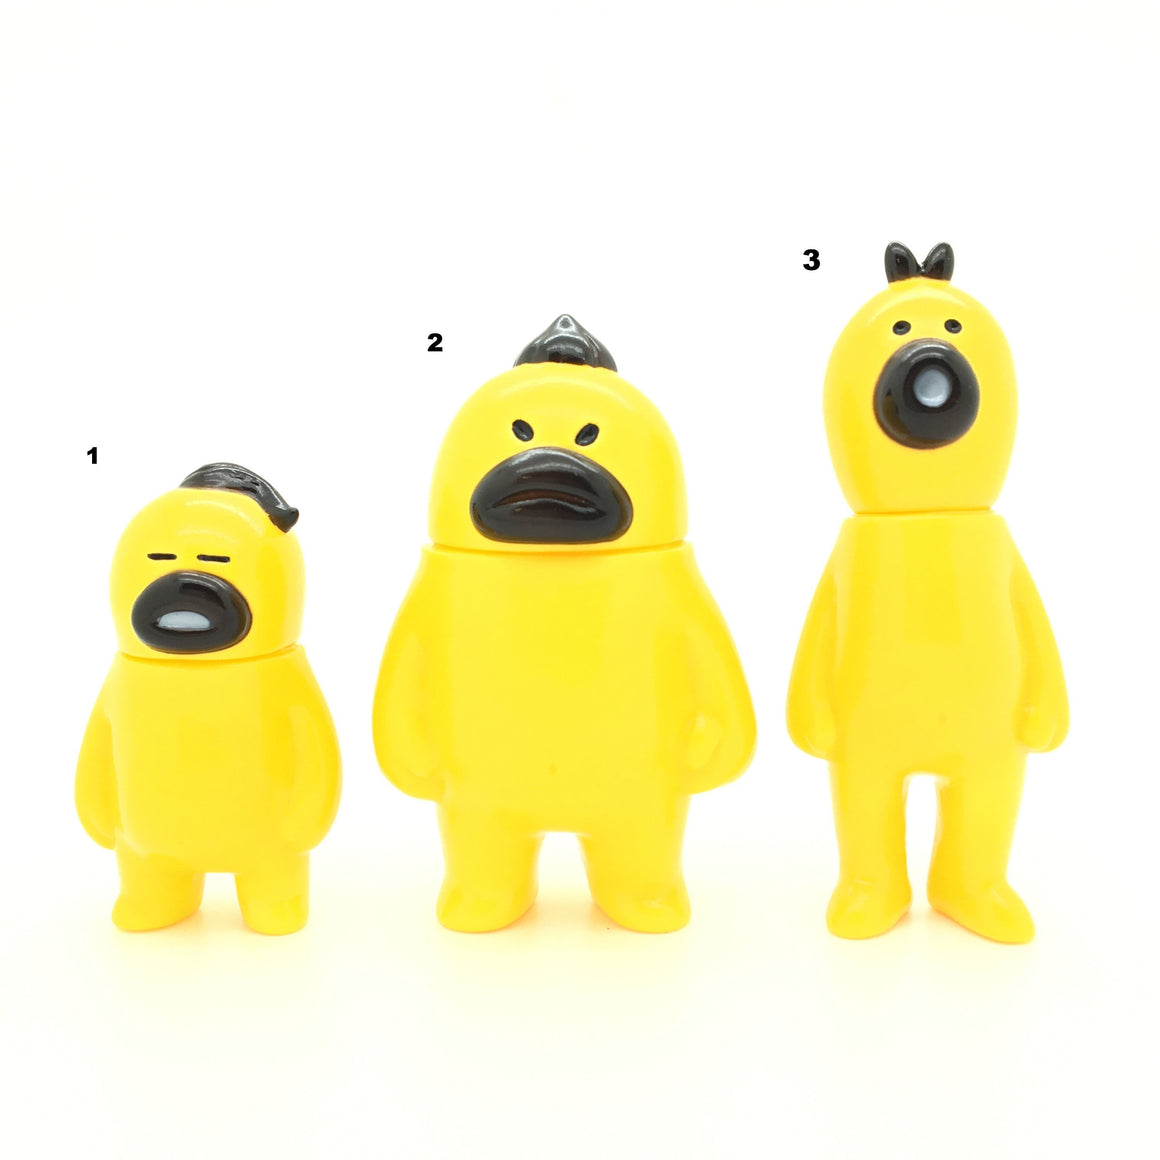 Are, Sore, Kore Soft Vinyl Guardians Yellow/Black Sofubi Toy by Hariken